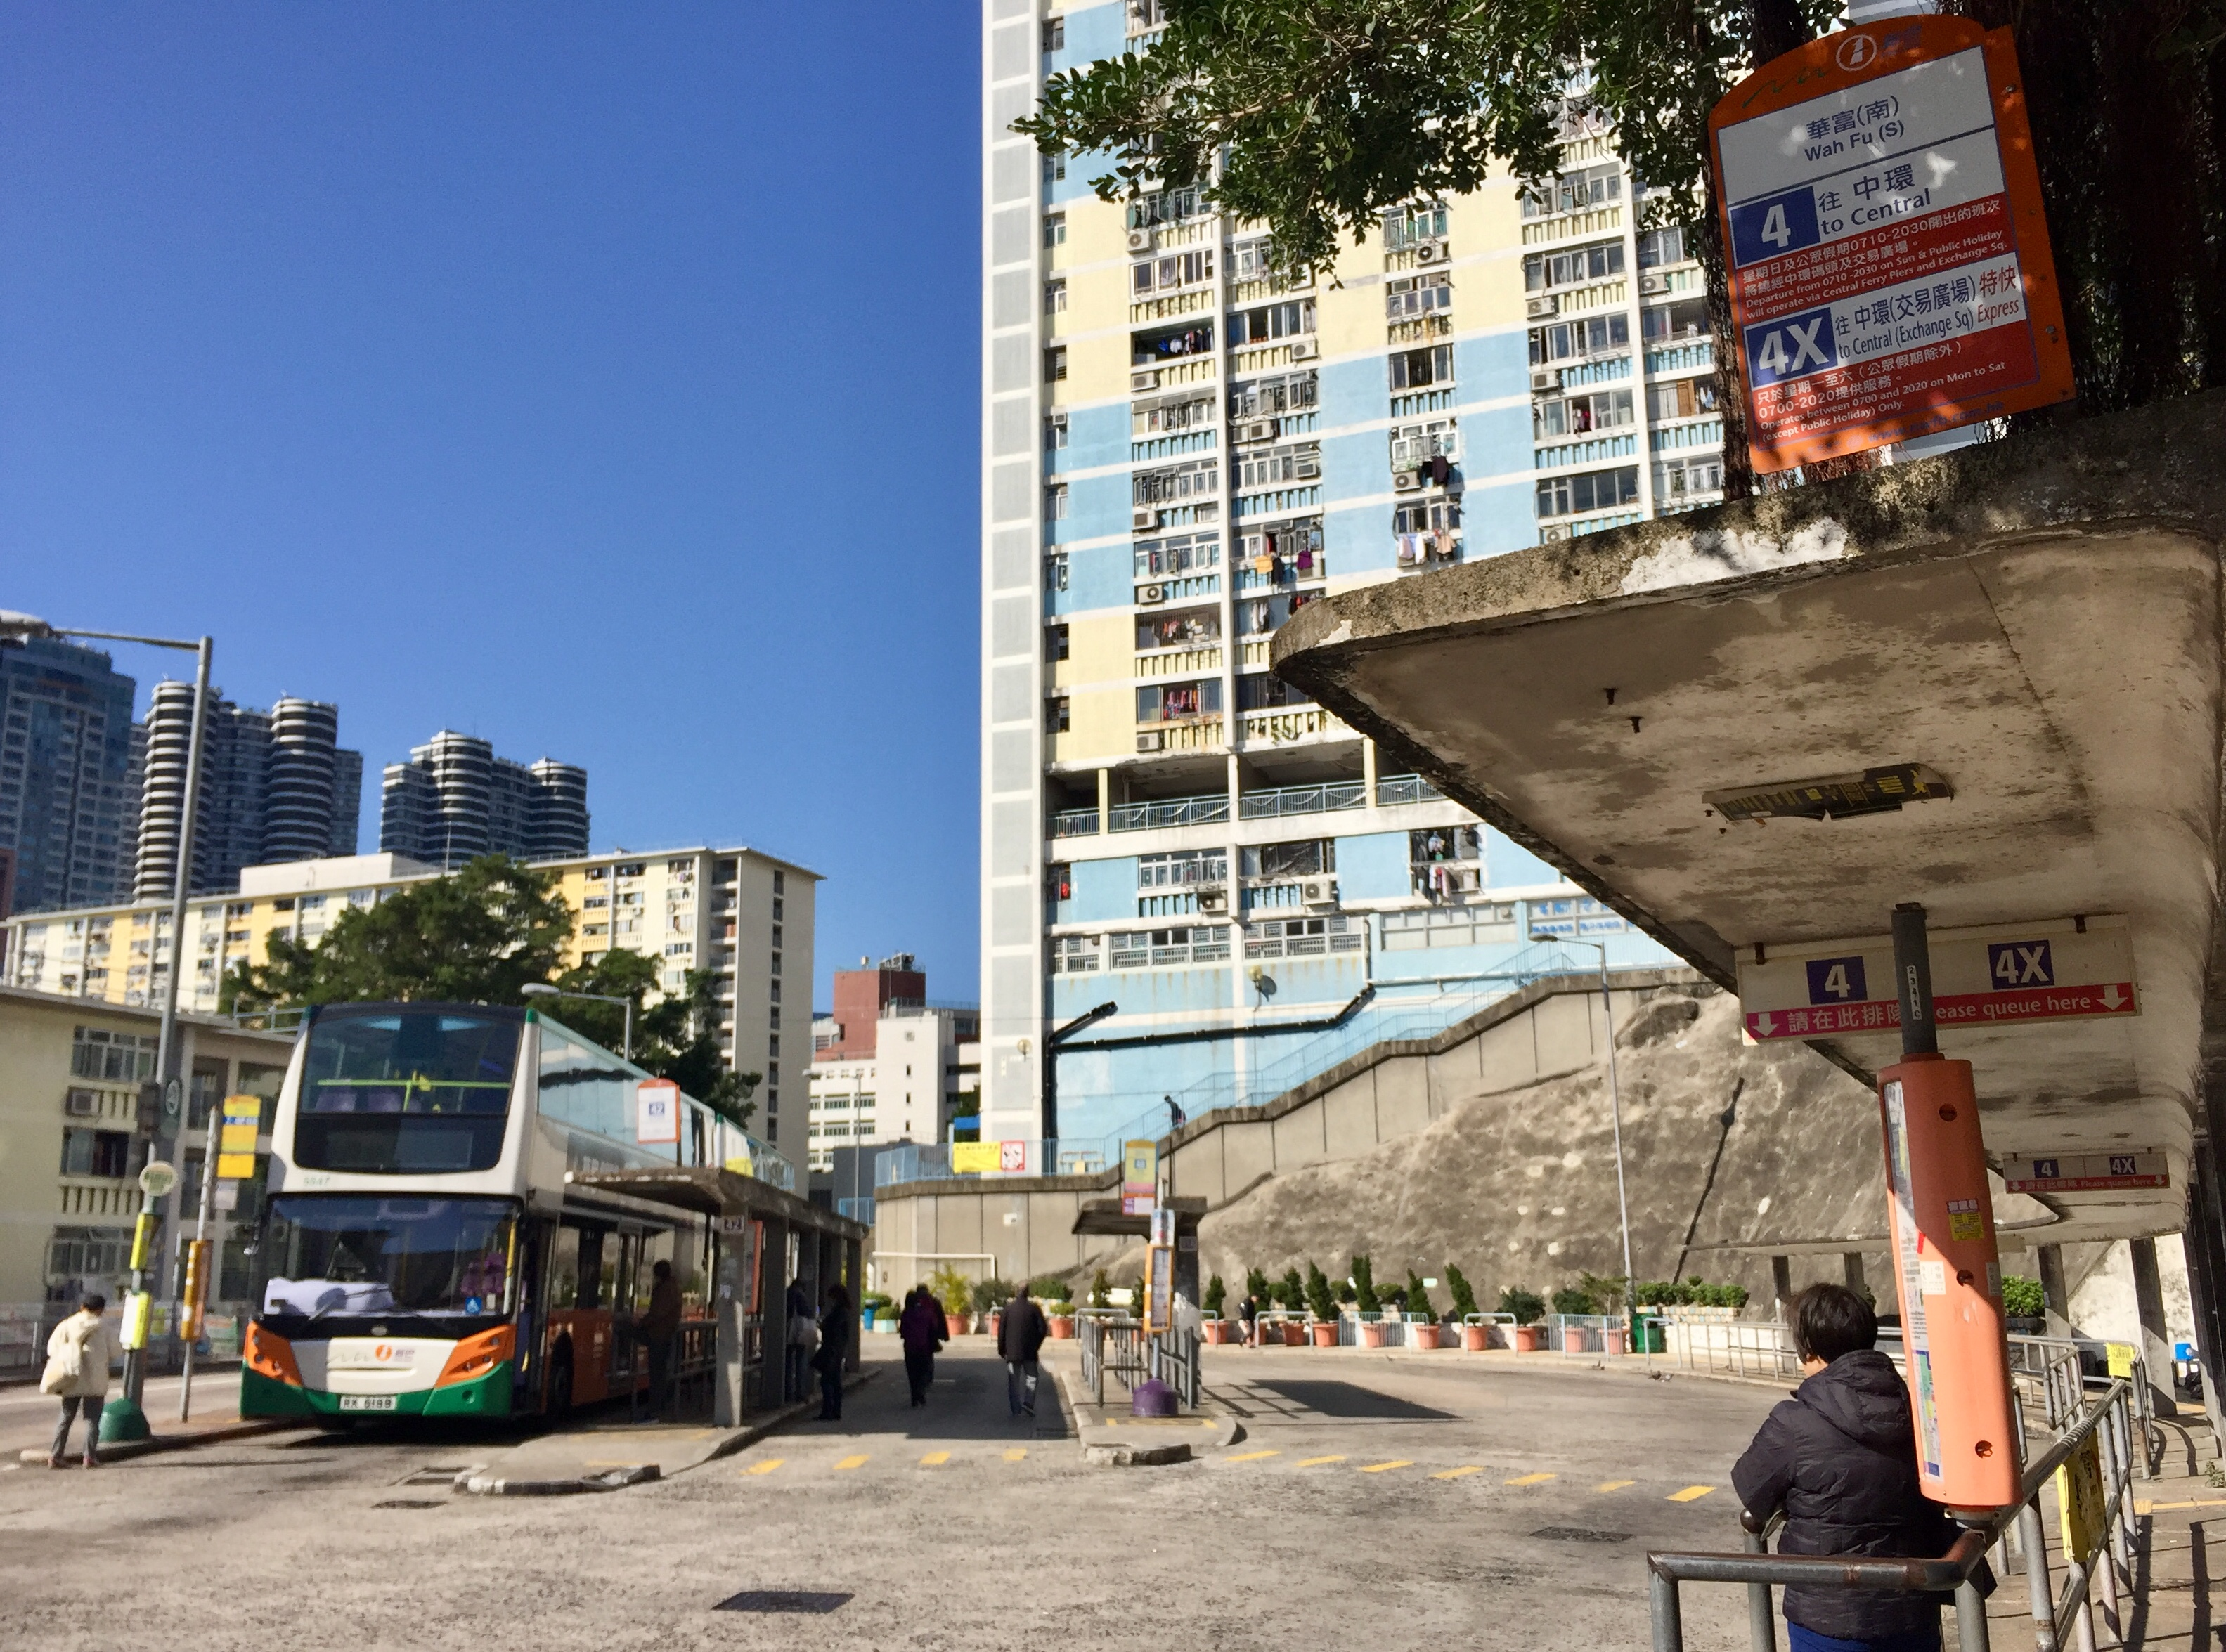 Wah Fu Estate Bus Terminal - Route Number 4 華富邨巴士總站 - 4號巴士